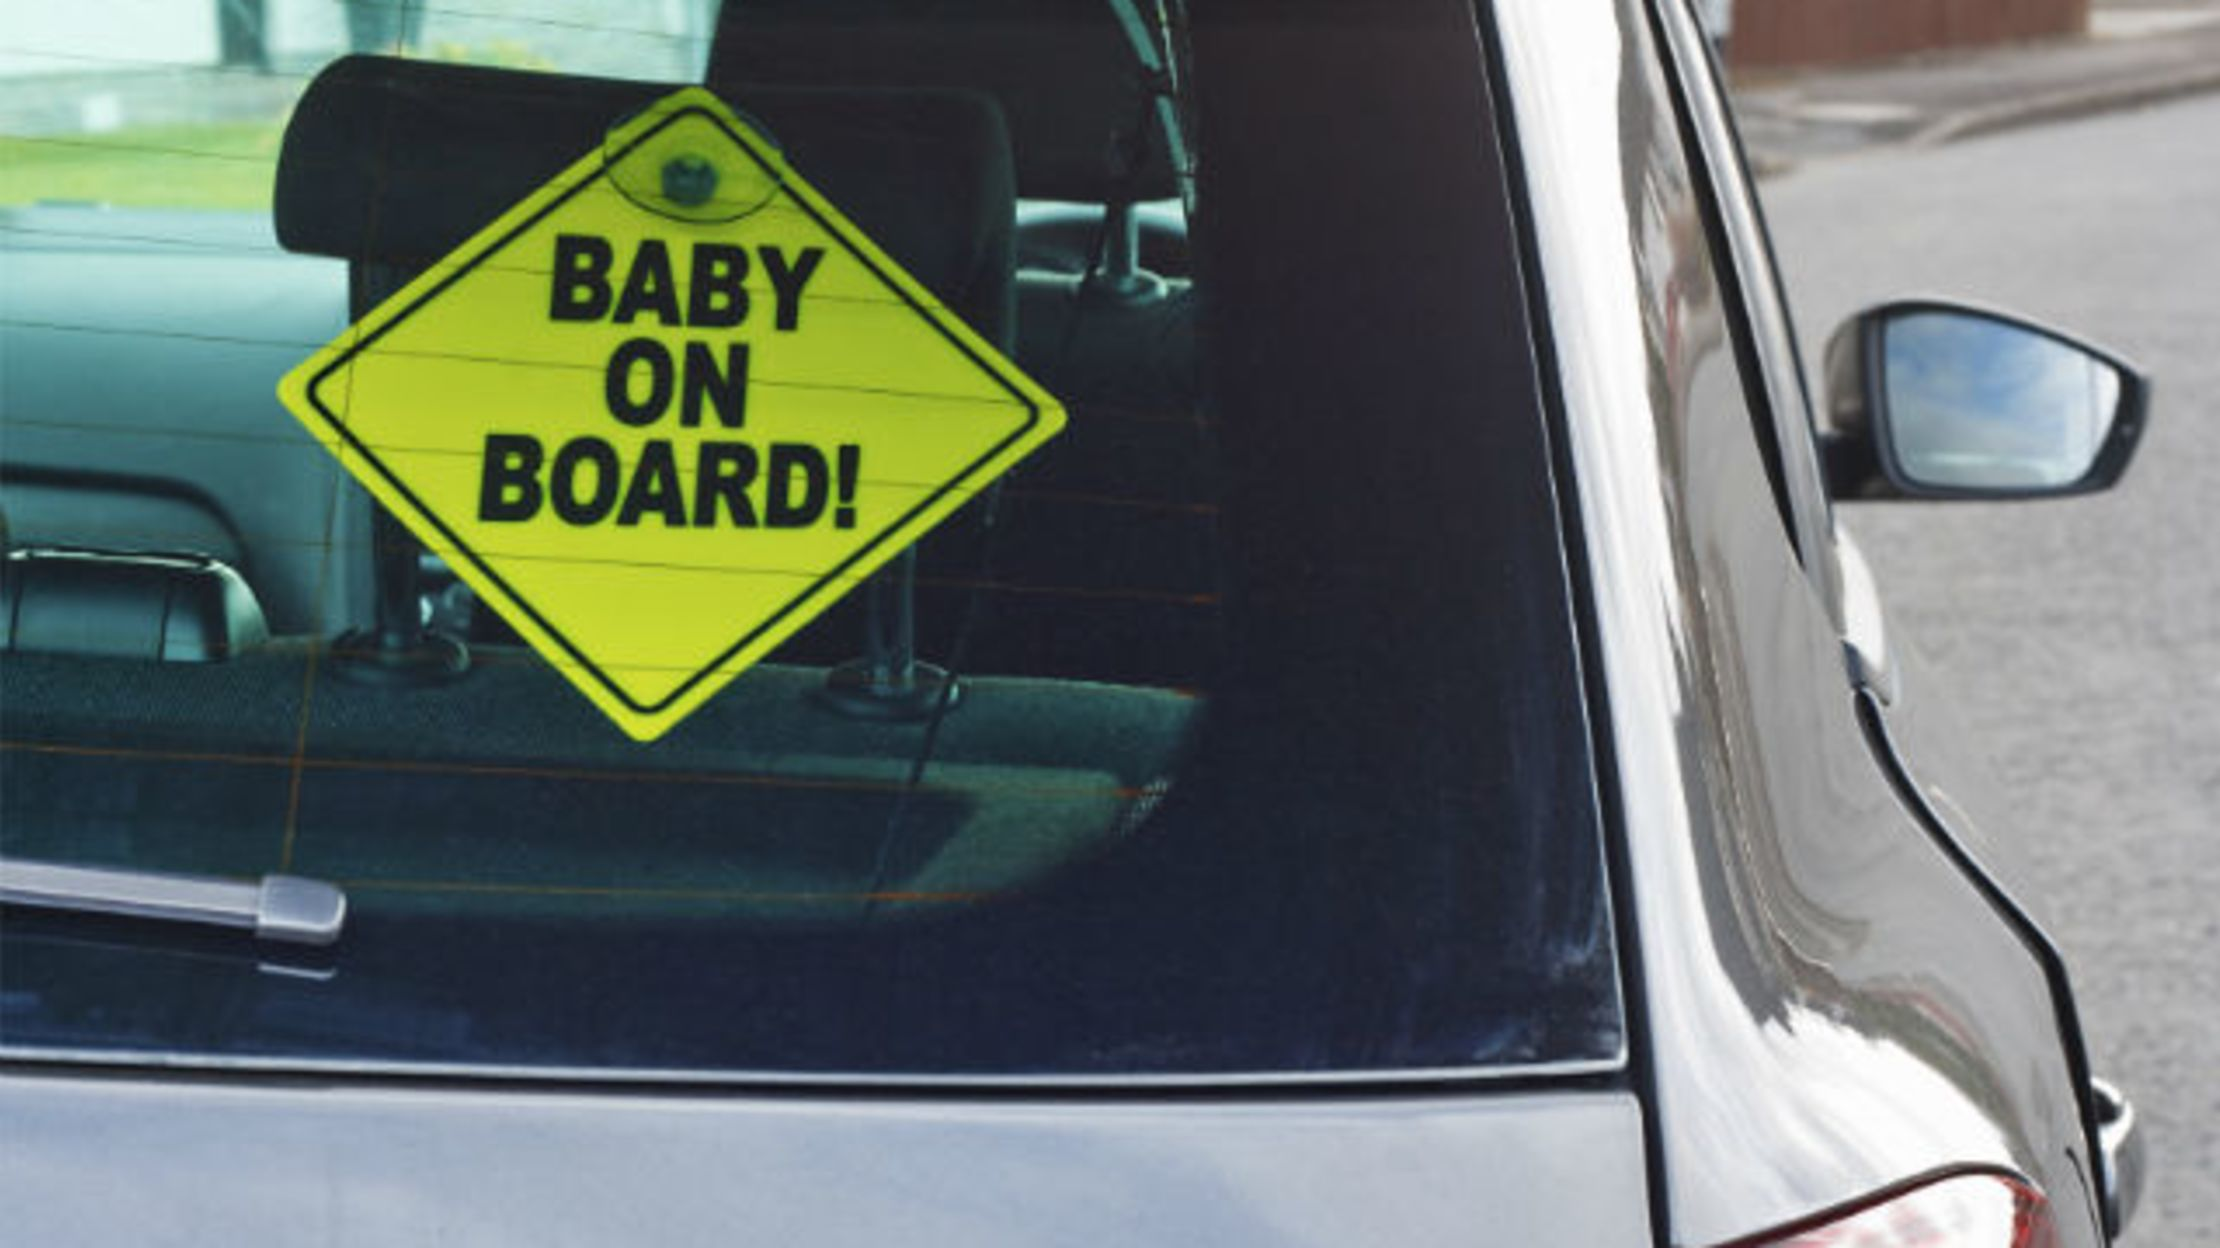 Baby Responsible Baby On Board Safety Decals Sticker Cars Window